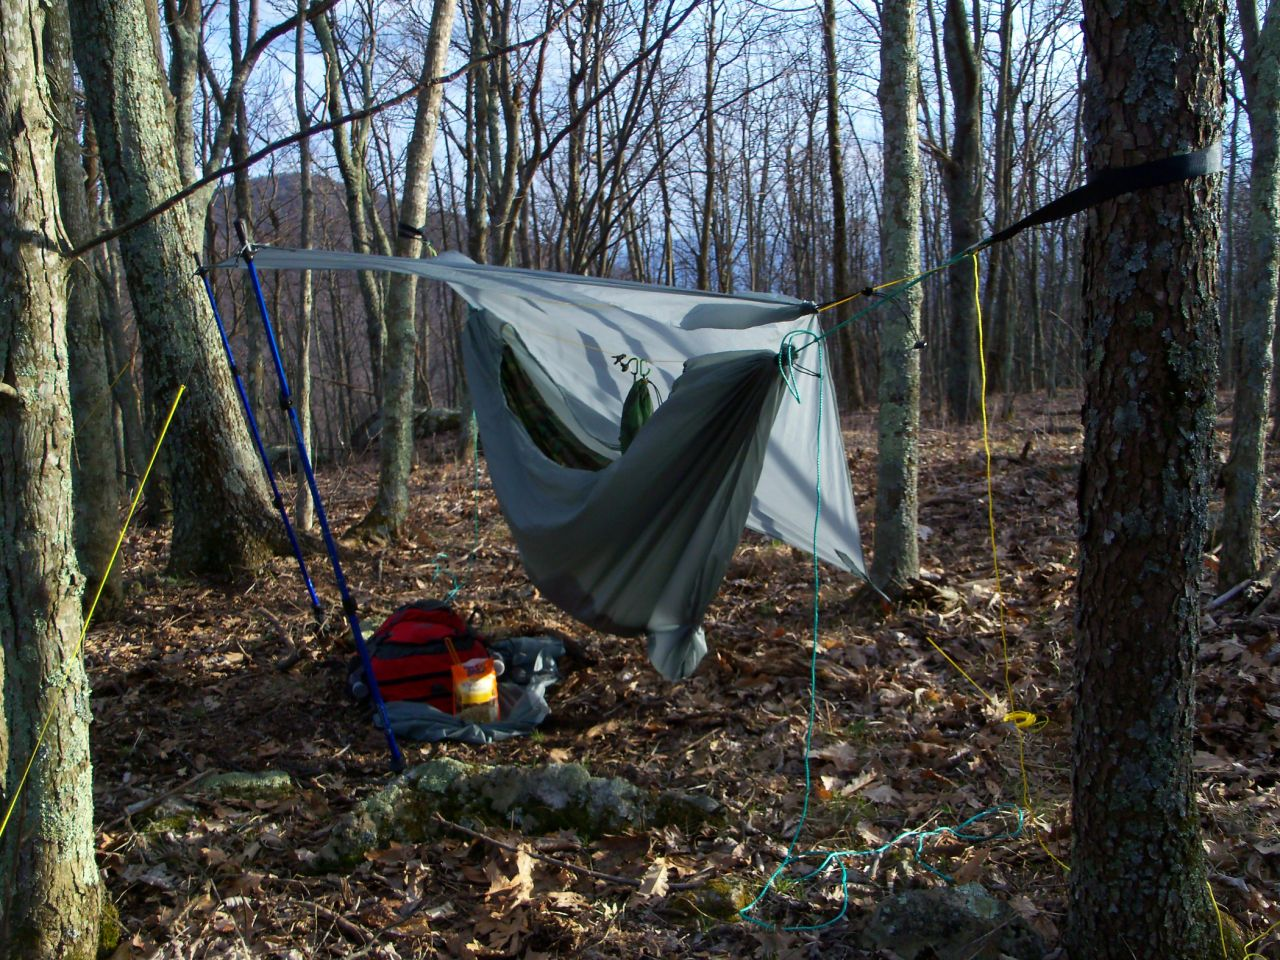 Comfy Solo Camp Using My New Diy Sock And Tarp Combo